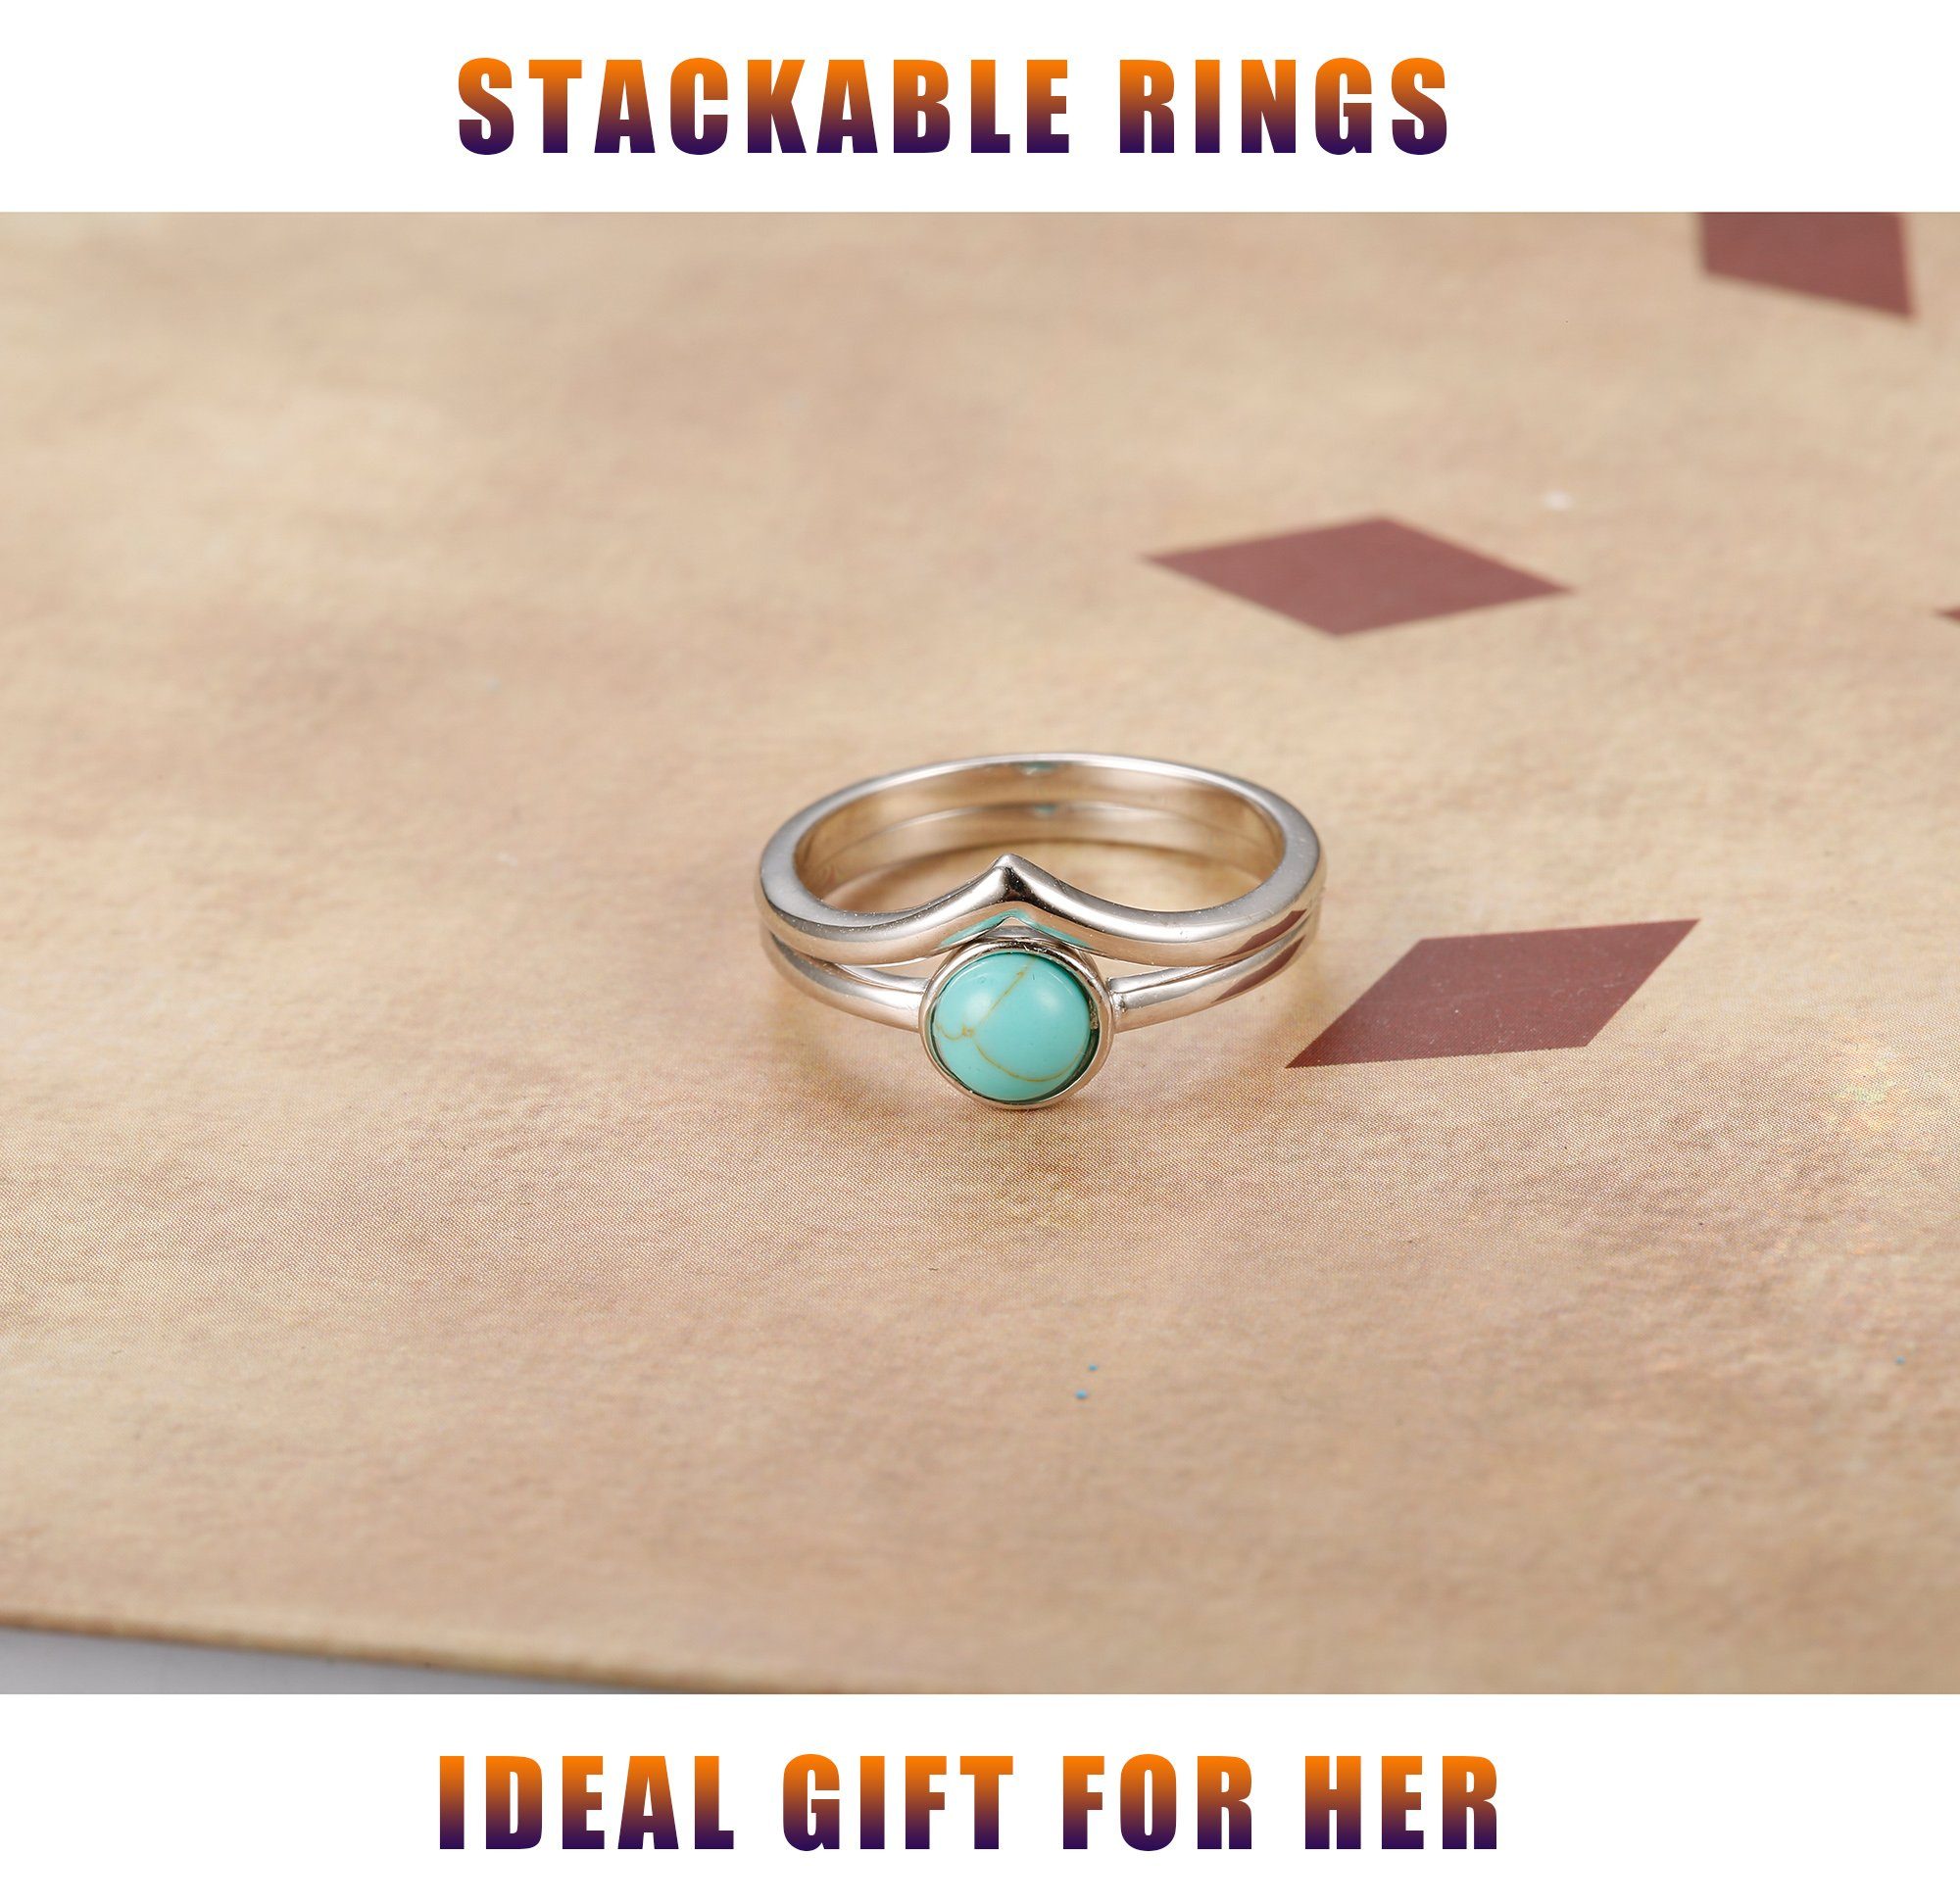 FUNRUN JEWELRY 2 PCS Sterling Silver Stackable Rings for Women Girls Chevron Thumb Turquoise Rings Set High Polish Size 9 by FUNRUN JEWELRY (Image #3)